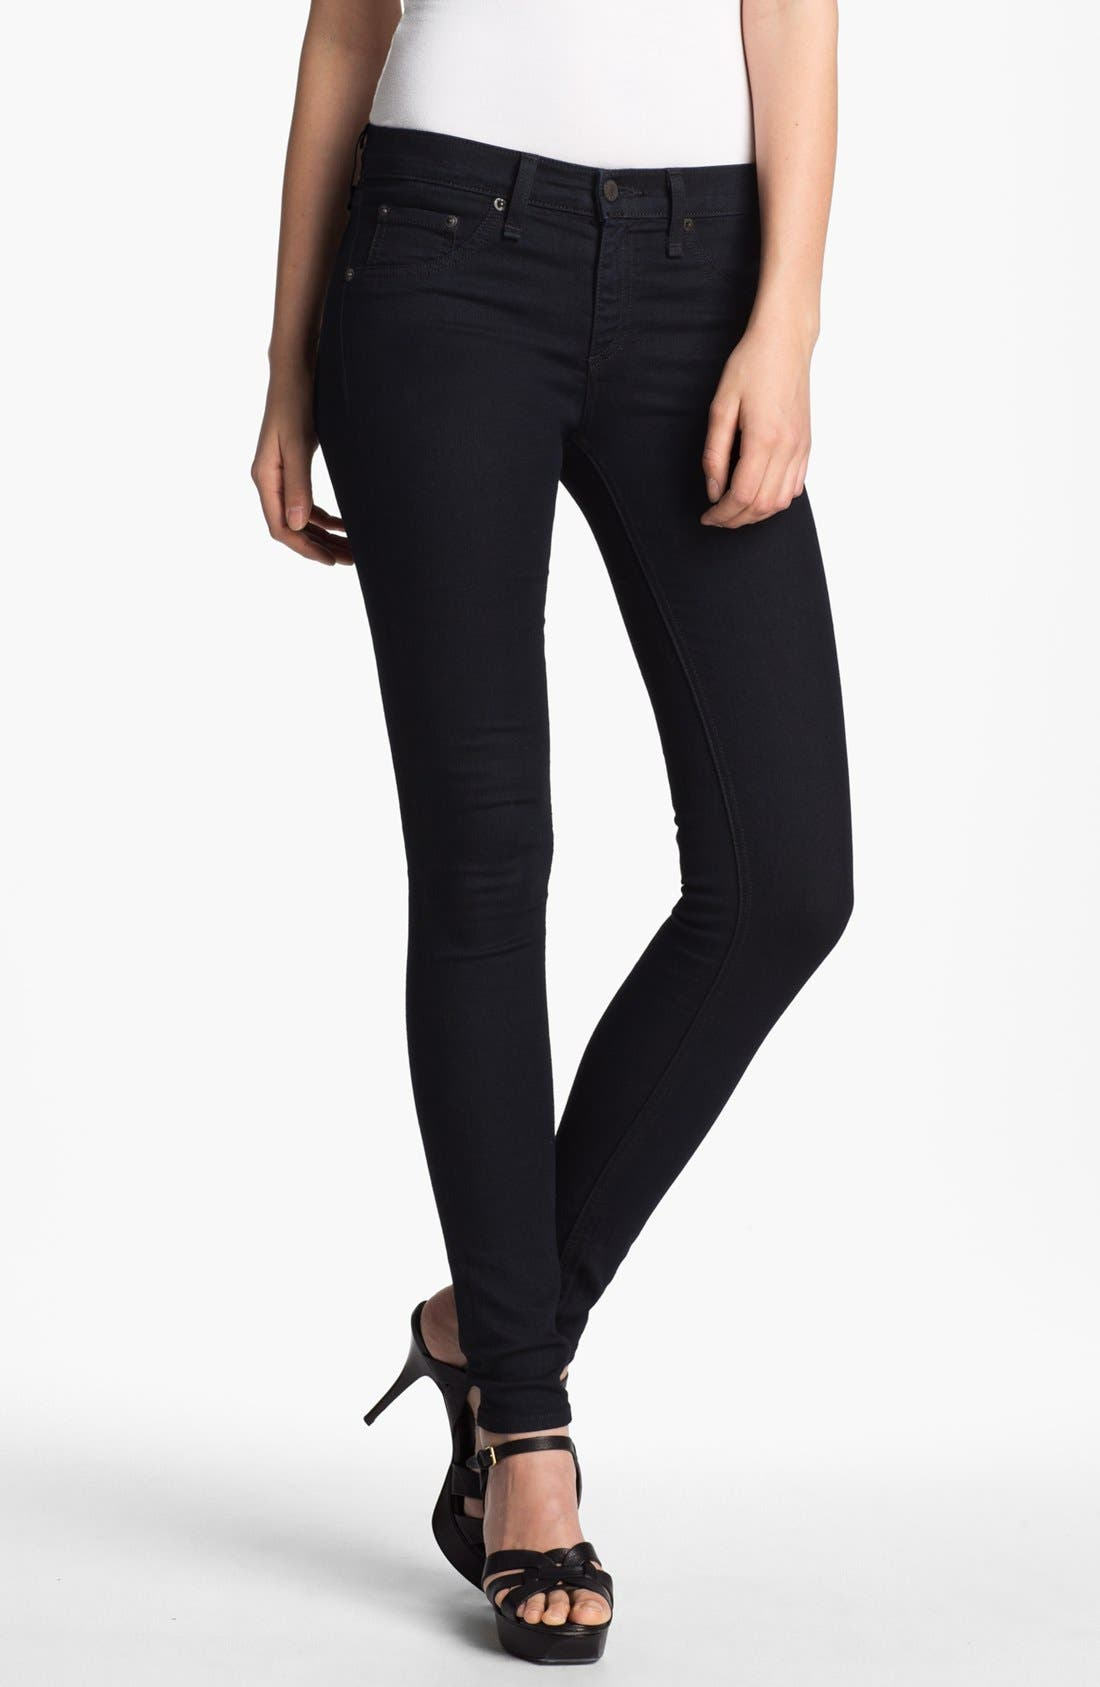 Alternate Image 1 Selected - rag & bone/JEAN 'The Legging' Stretch Denim Leggings